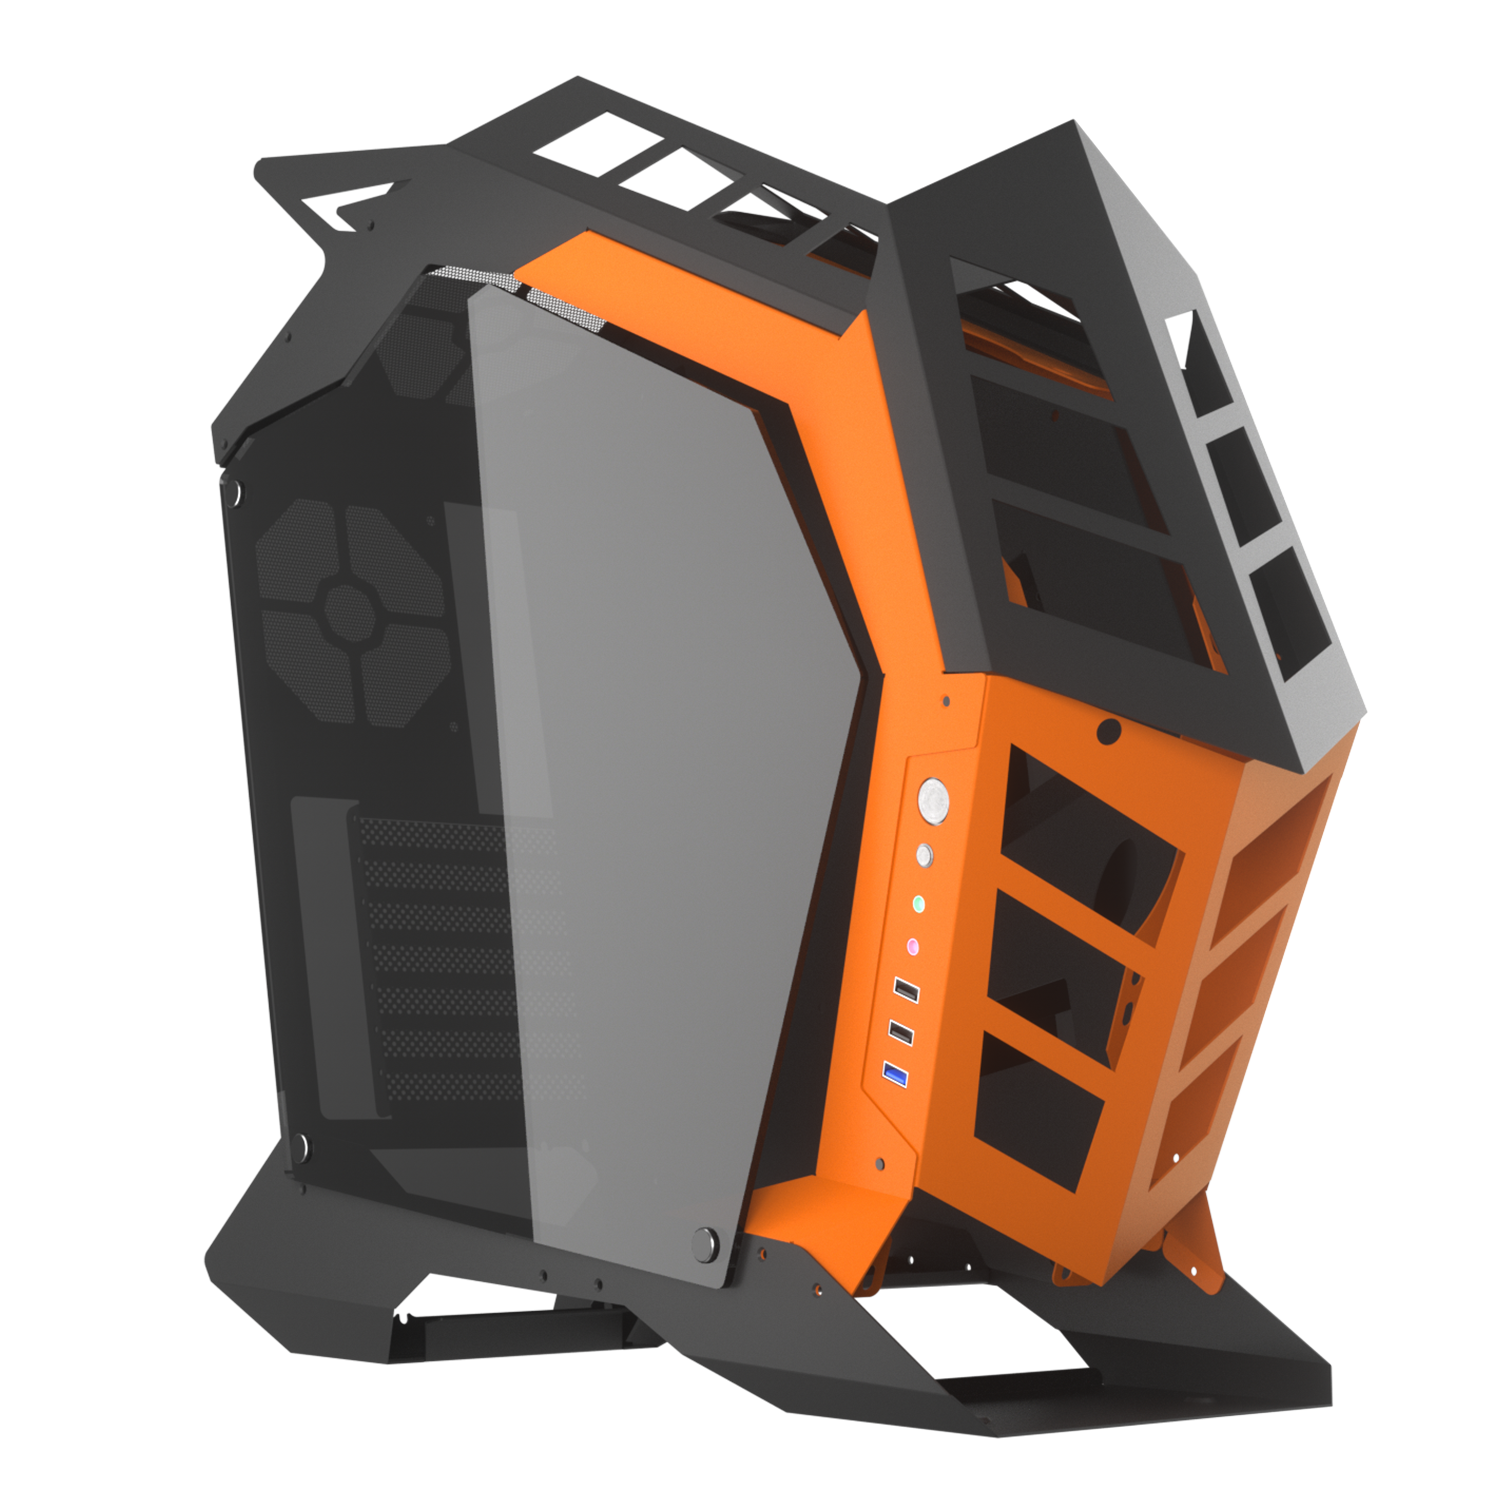 darkFlash Knight Open Frame ATX PC Case Mid Tower Aluminum Gaming Case & Two Sides of Tempered Glass